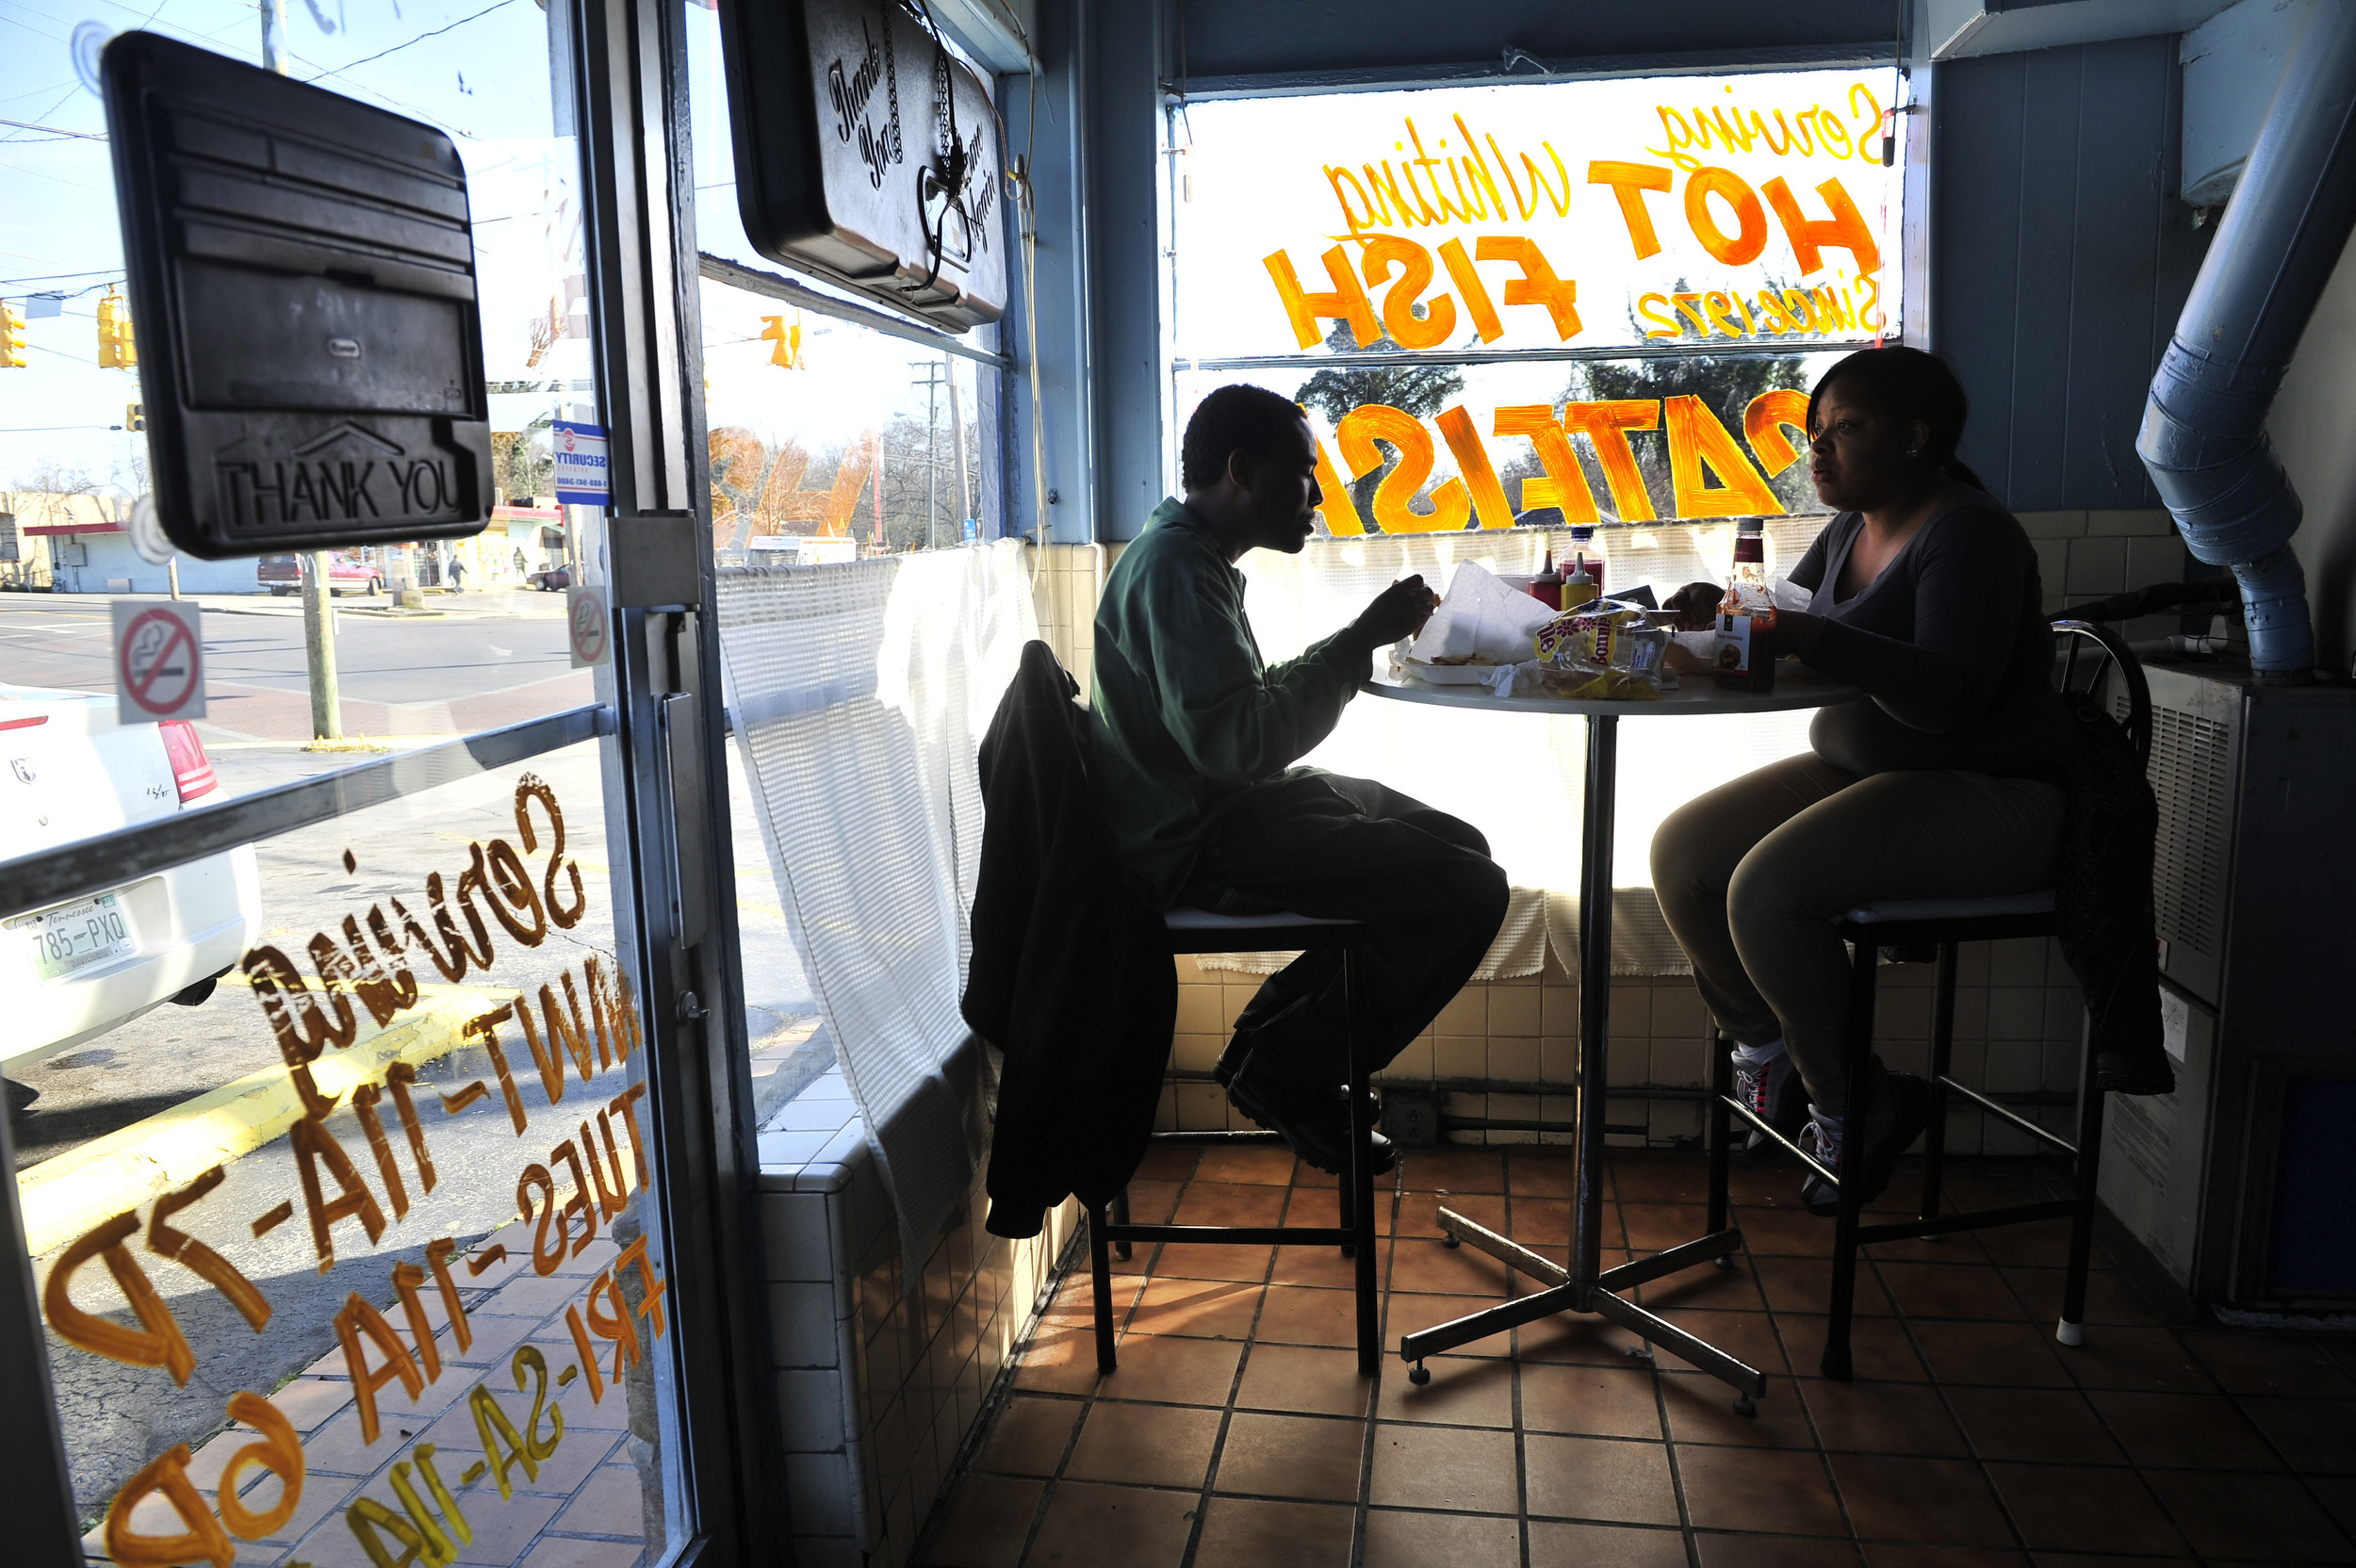 Ed's Fish, a North Nashville icon, has been serving fried fish sandwiches and other fare since 1972.